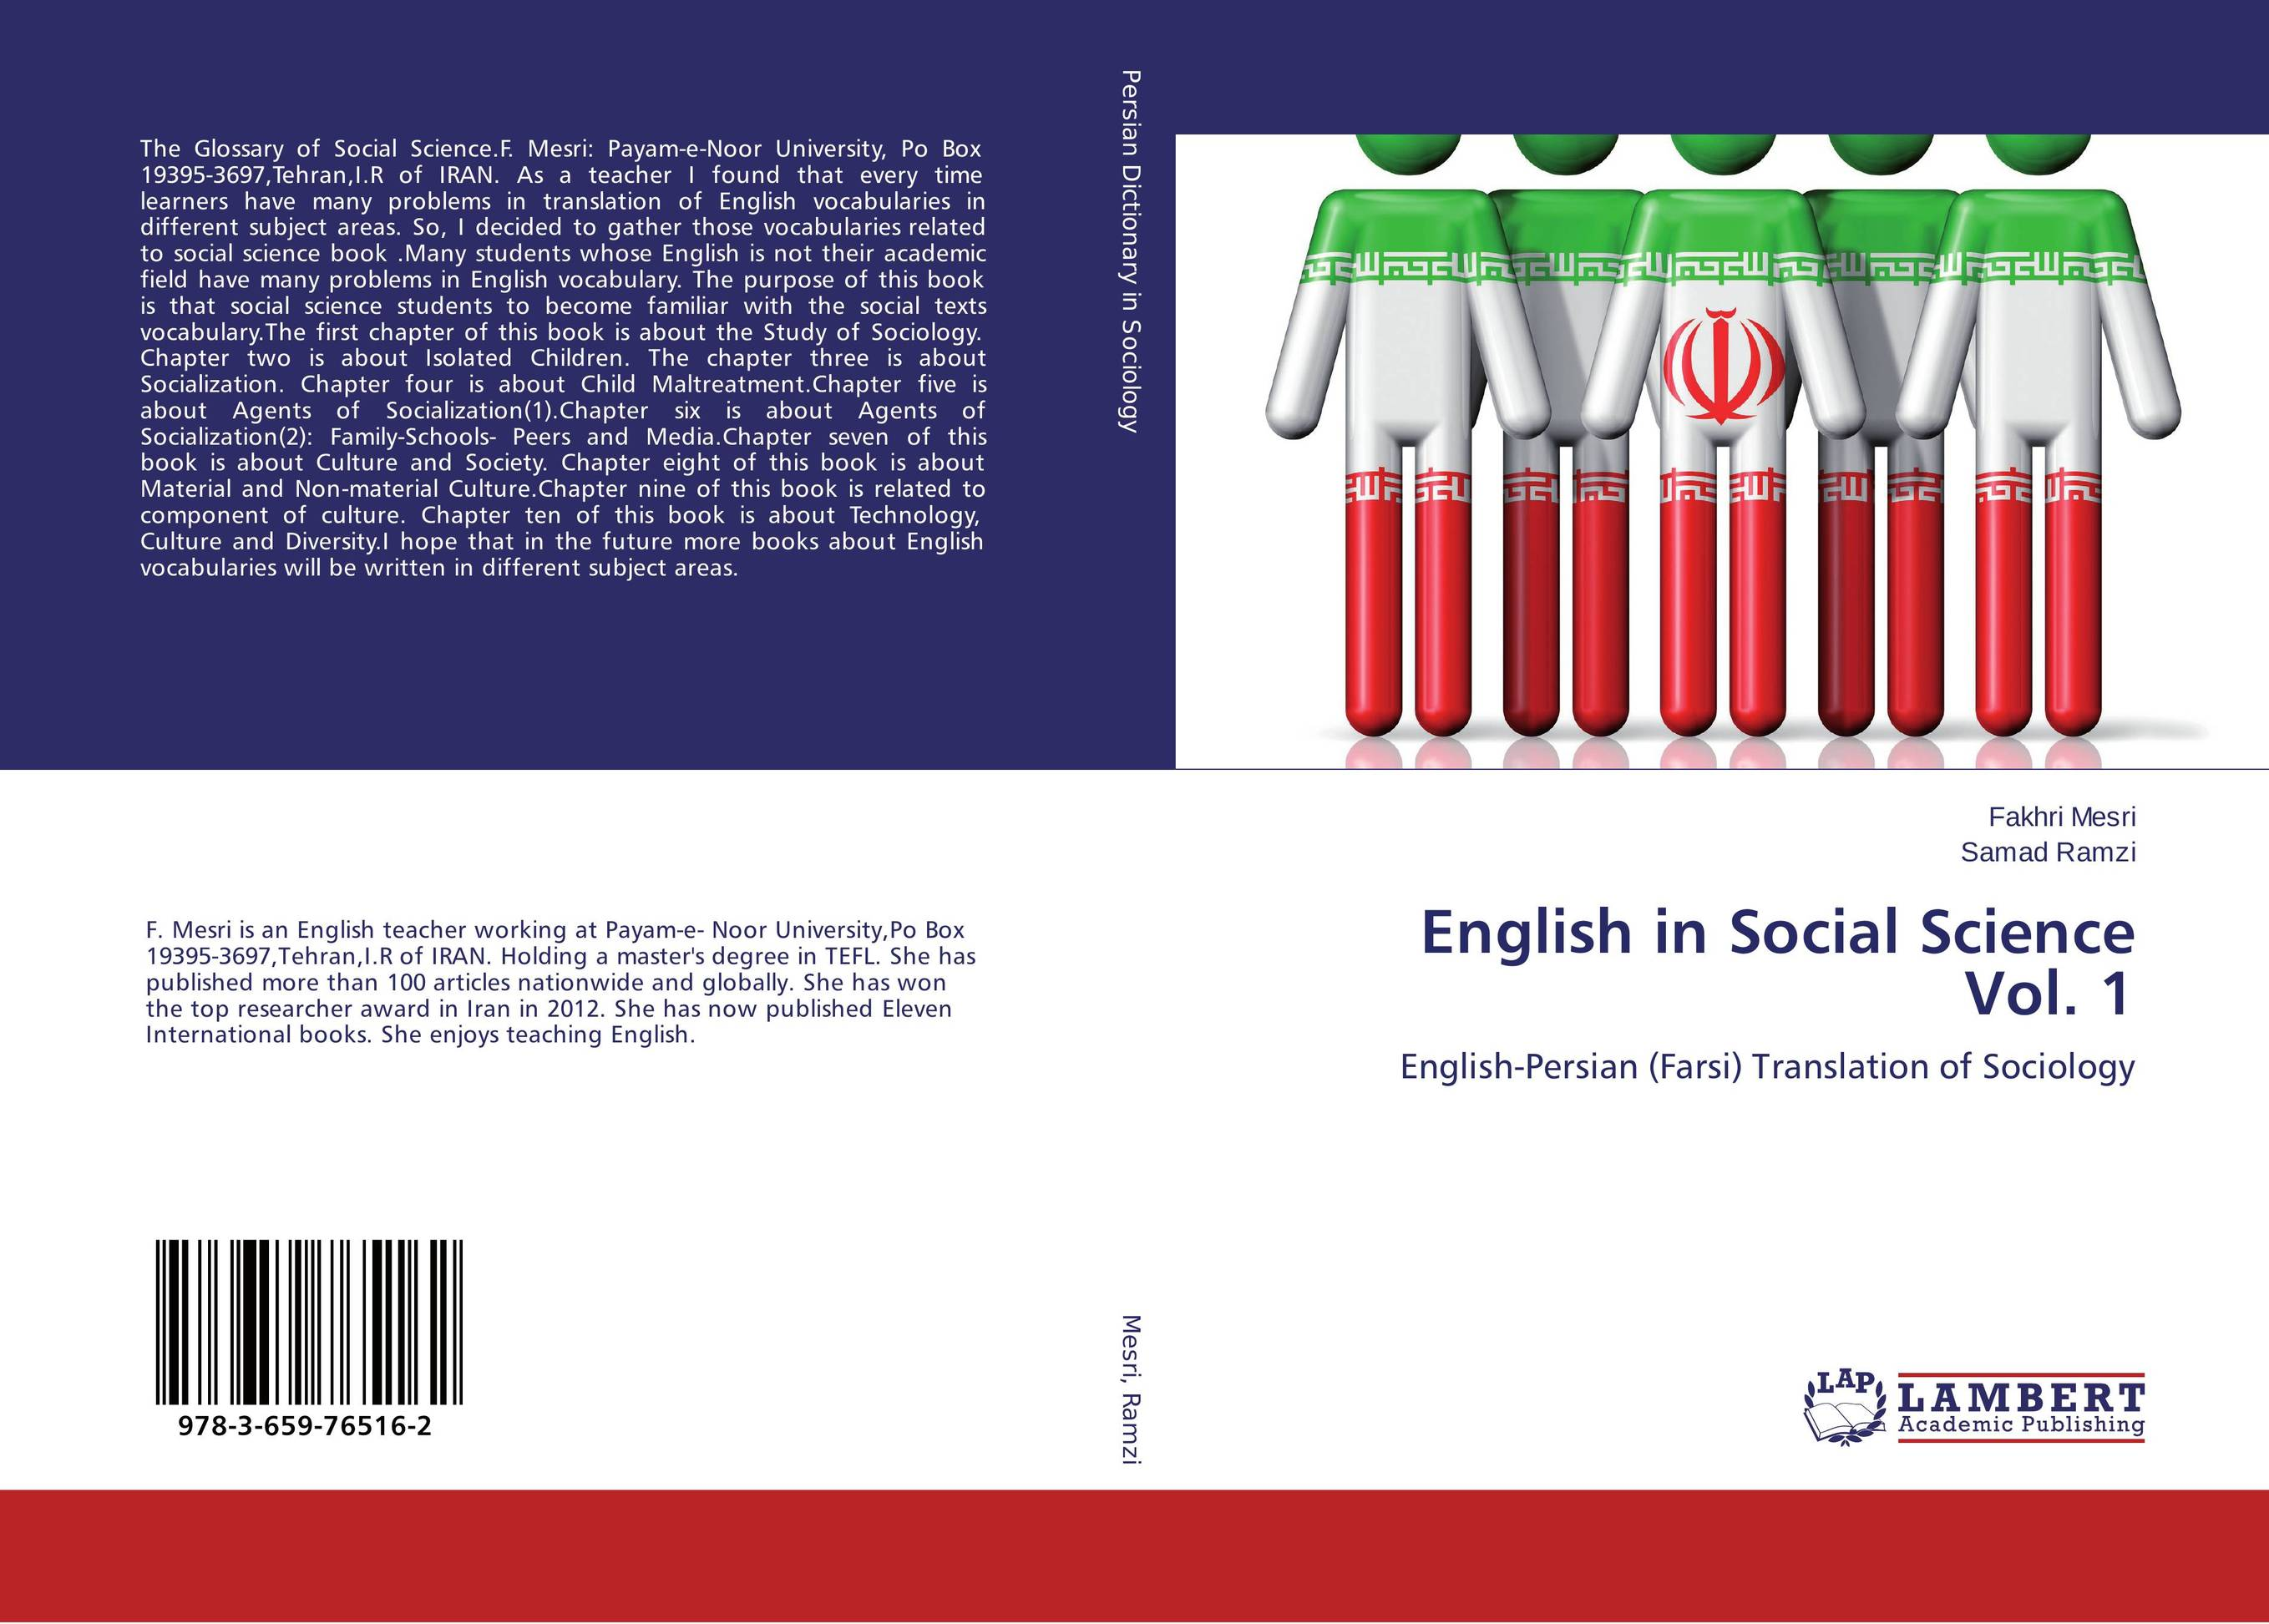 English in Social Science Vol. 1 e hutchins culture and inference – a trobriand case study